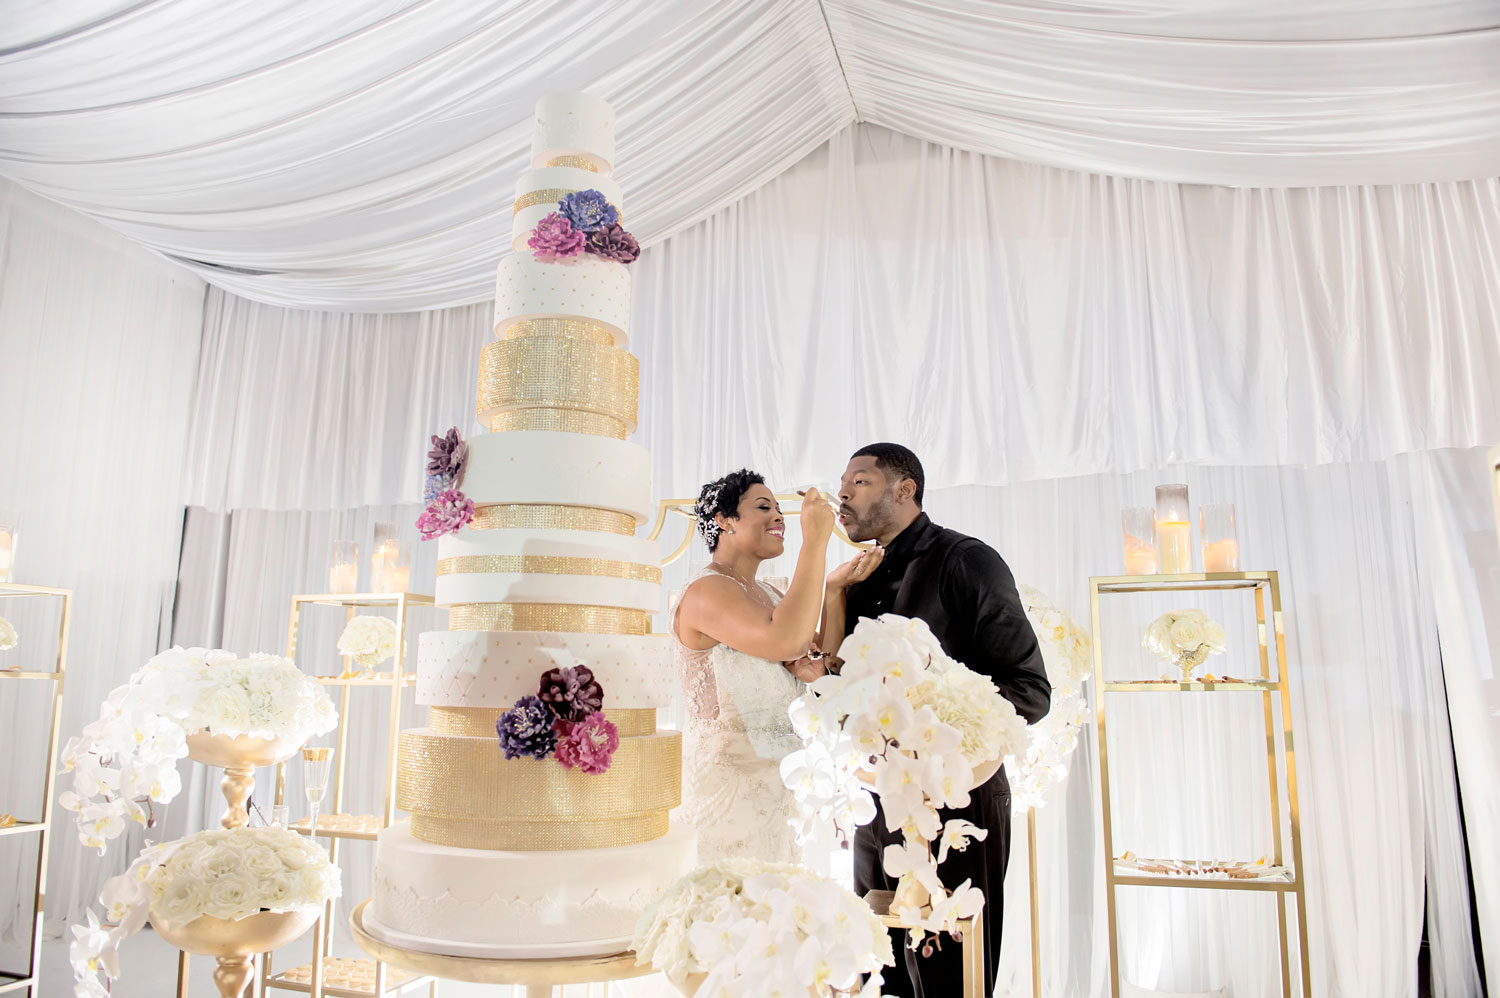 when to cut the cake at your wedding, when to do the cake cutting at the reception